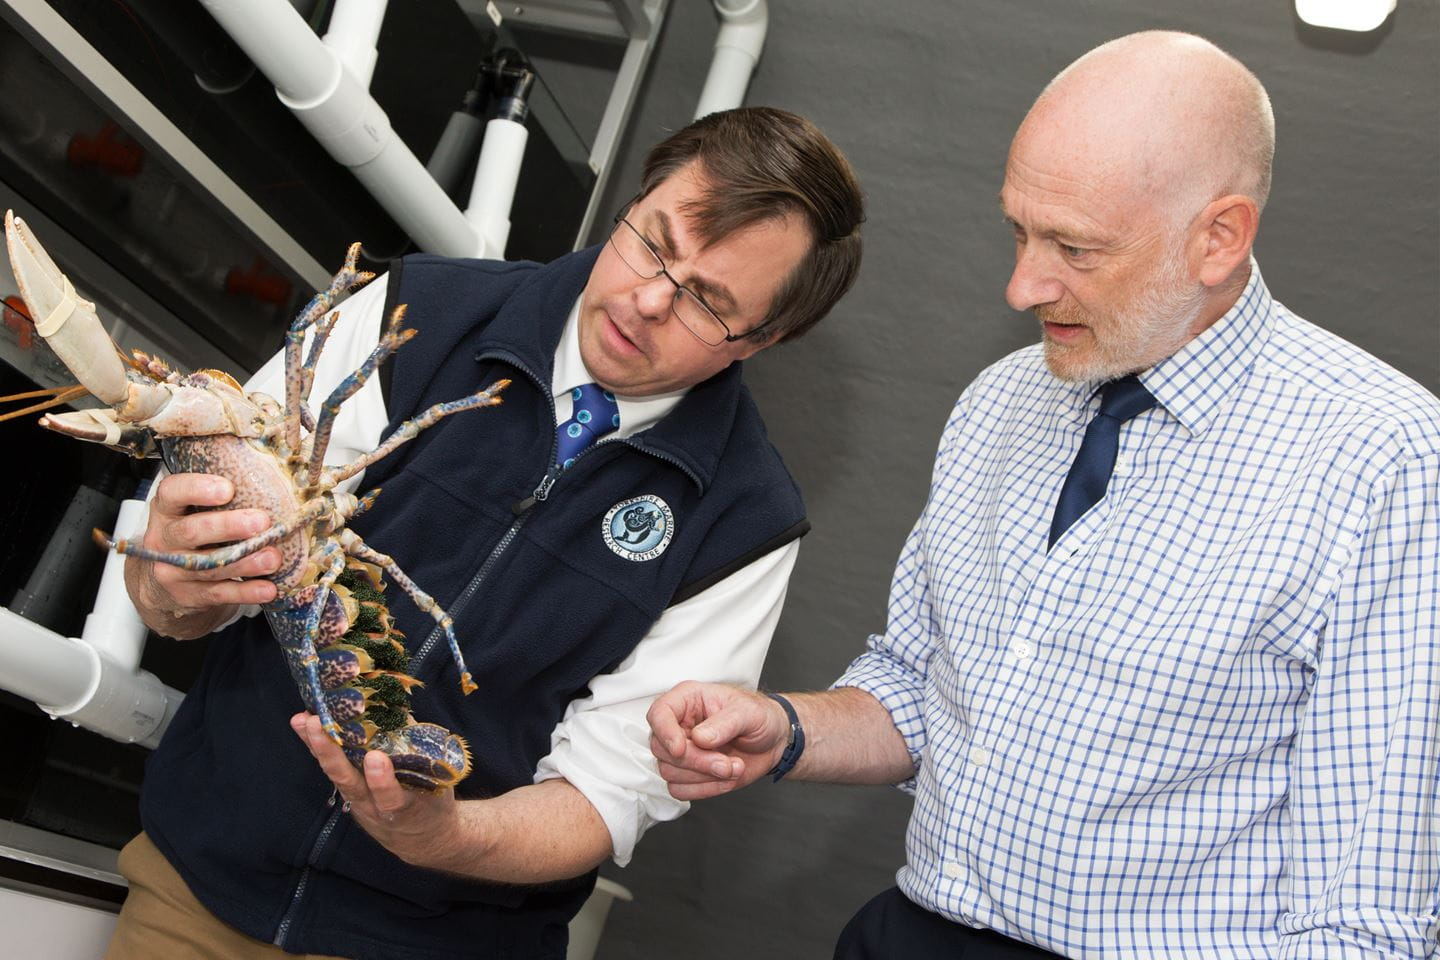 Researchers show Ørsted's Benj Sykes around the Yorkshire Marine Research Centre